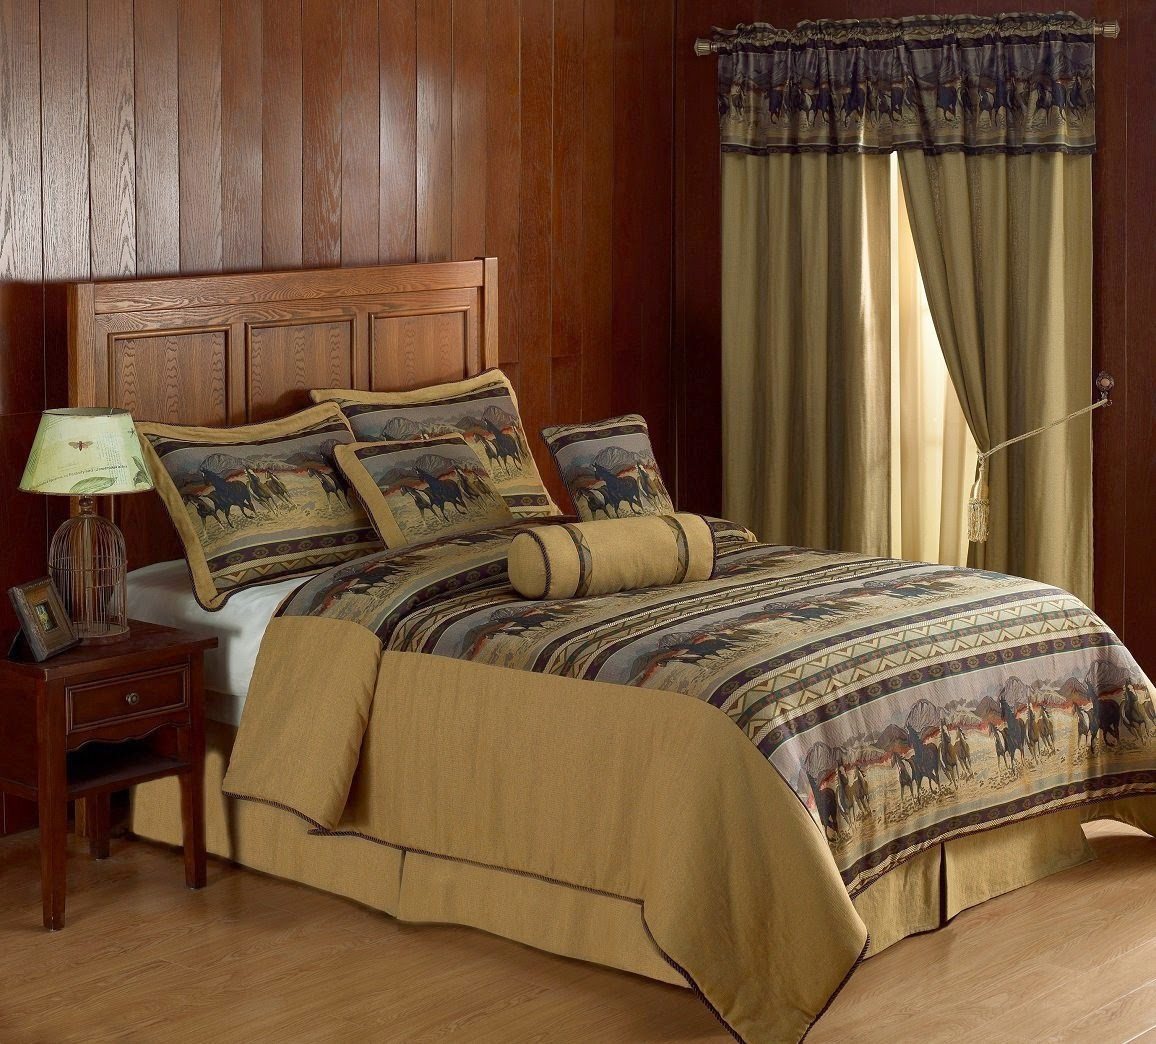 bedroom decor ideas and designs top ten equestrian and horse bedding